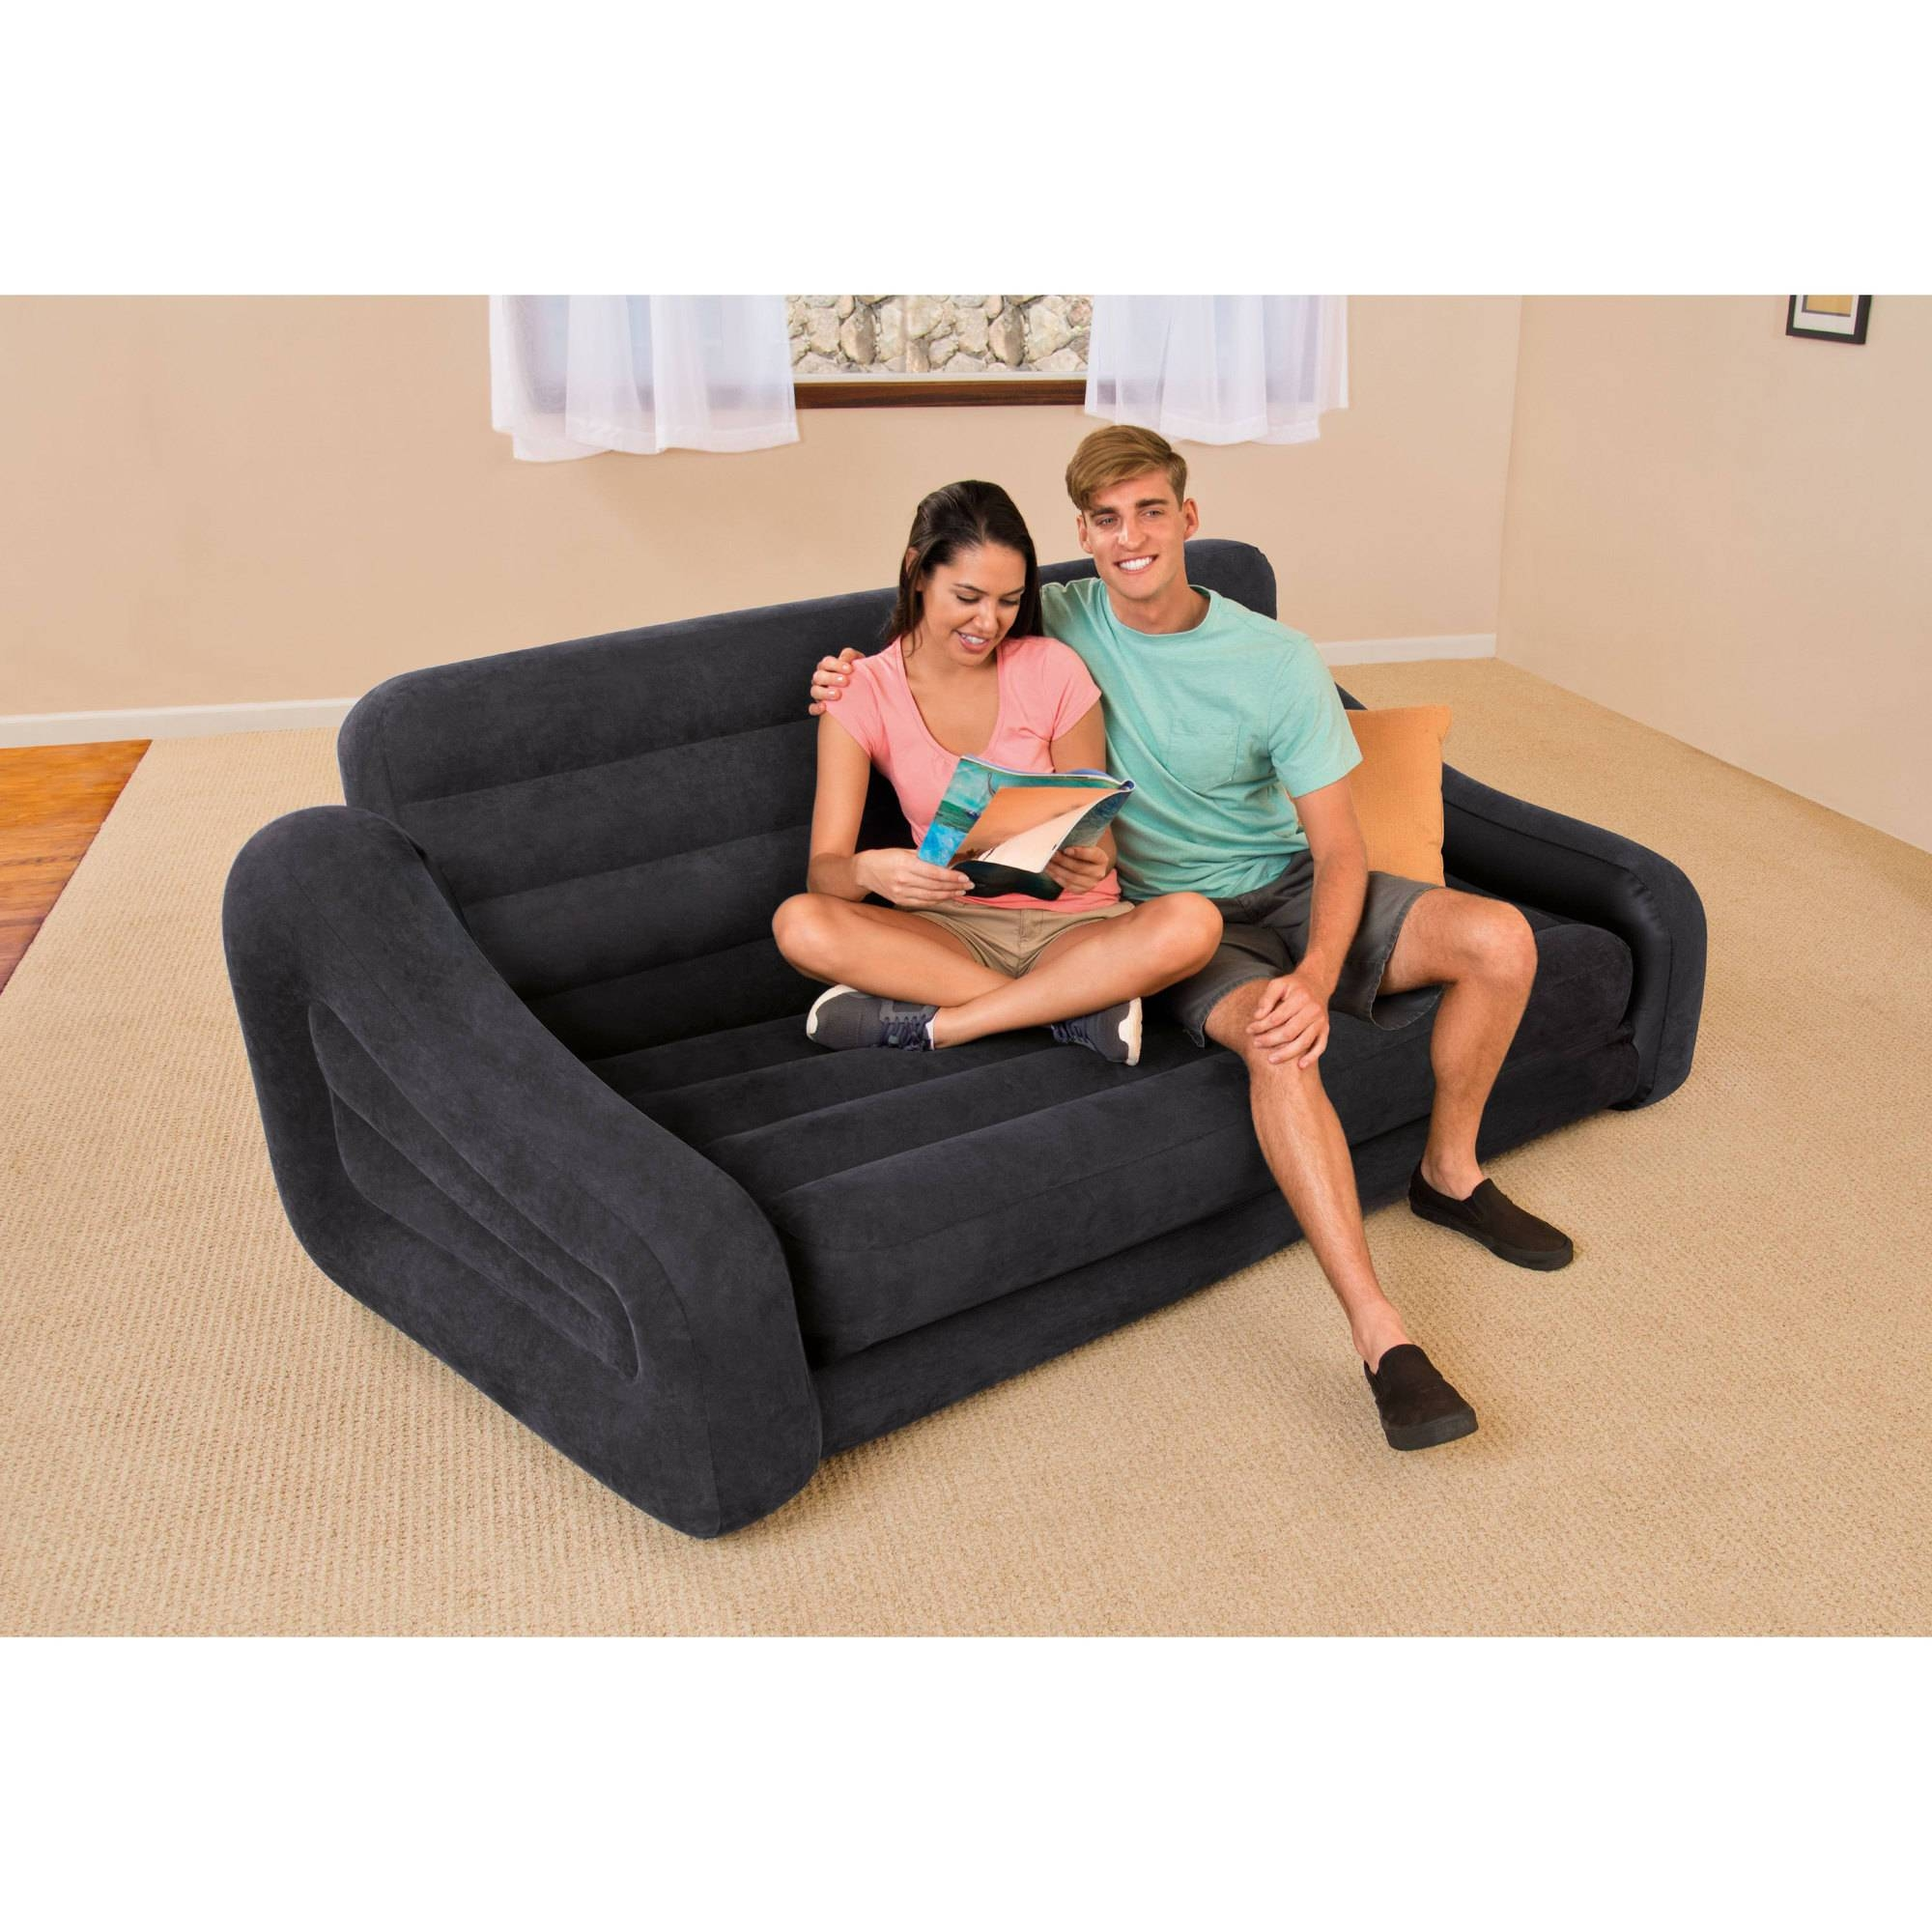 Intex Queen Inflatable Pull Out Sofa Bed - Walmart throughout Intex Queen Sleeper Sofas (Image 12 of 15)